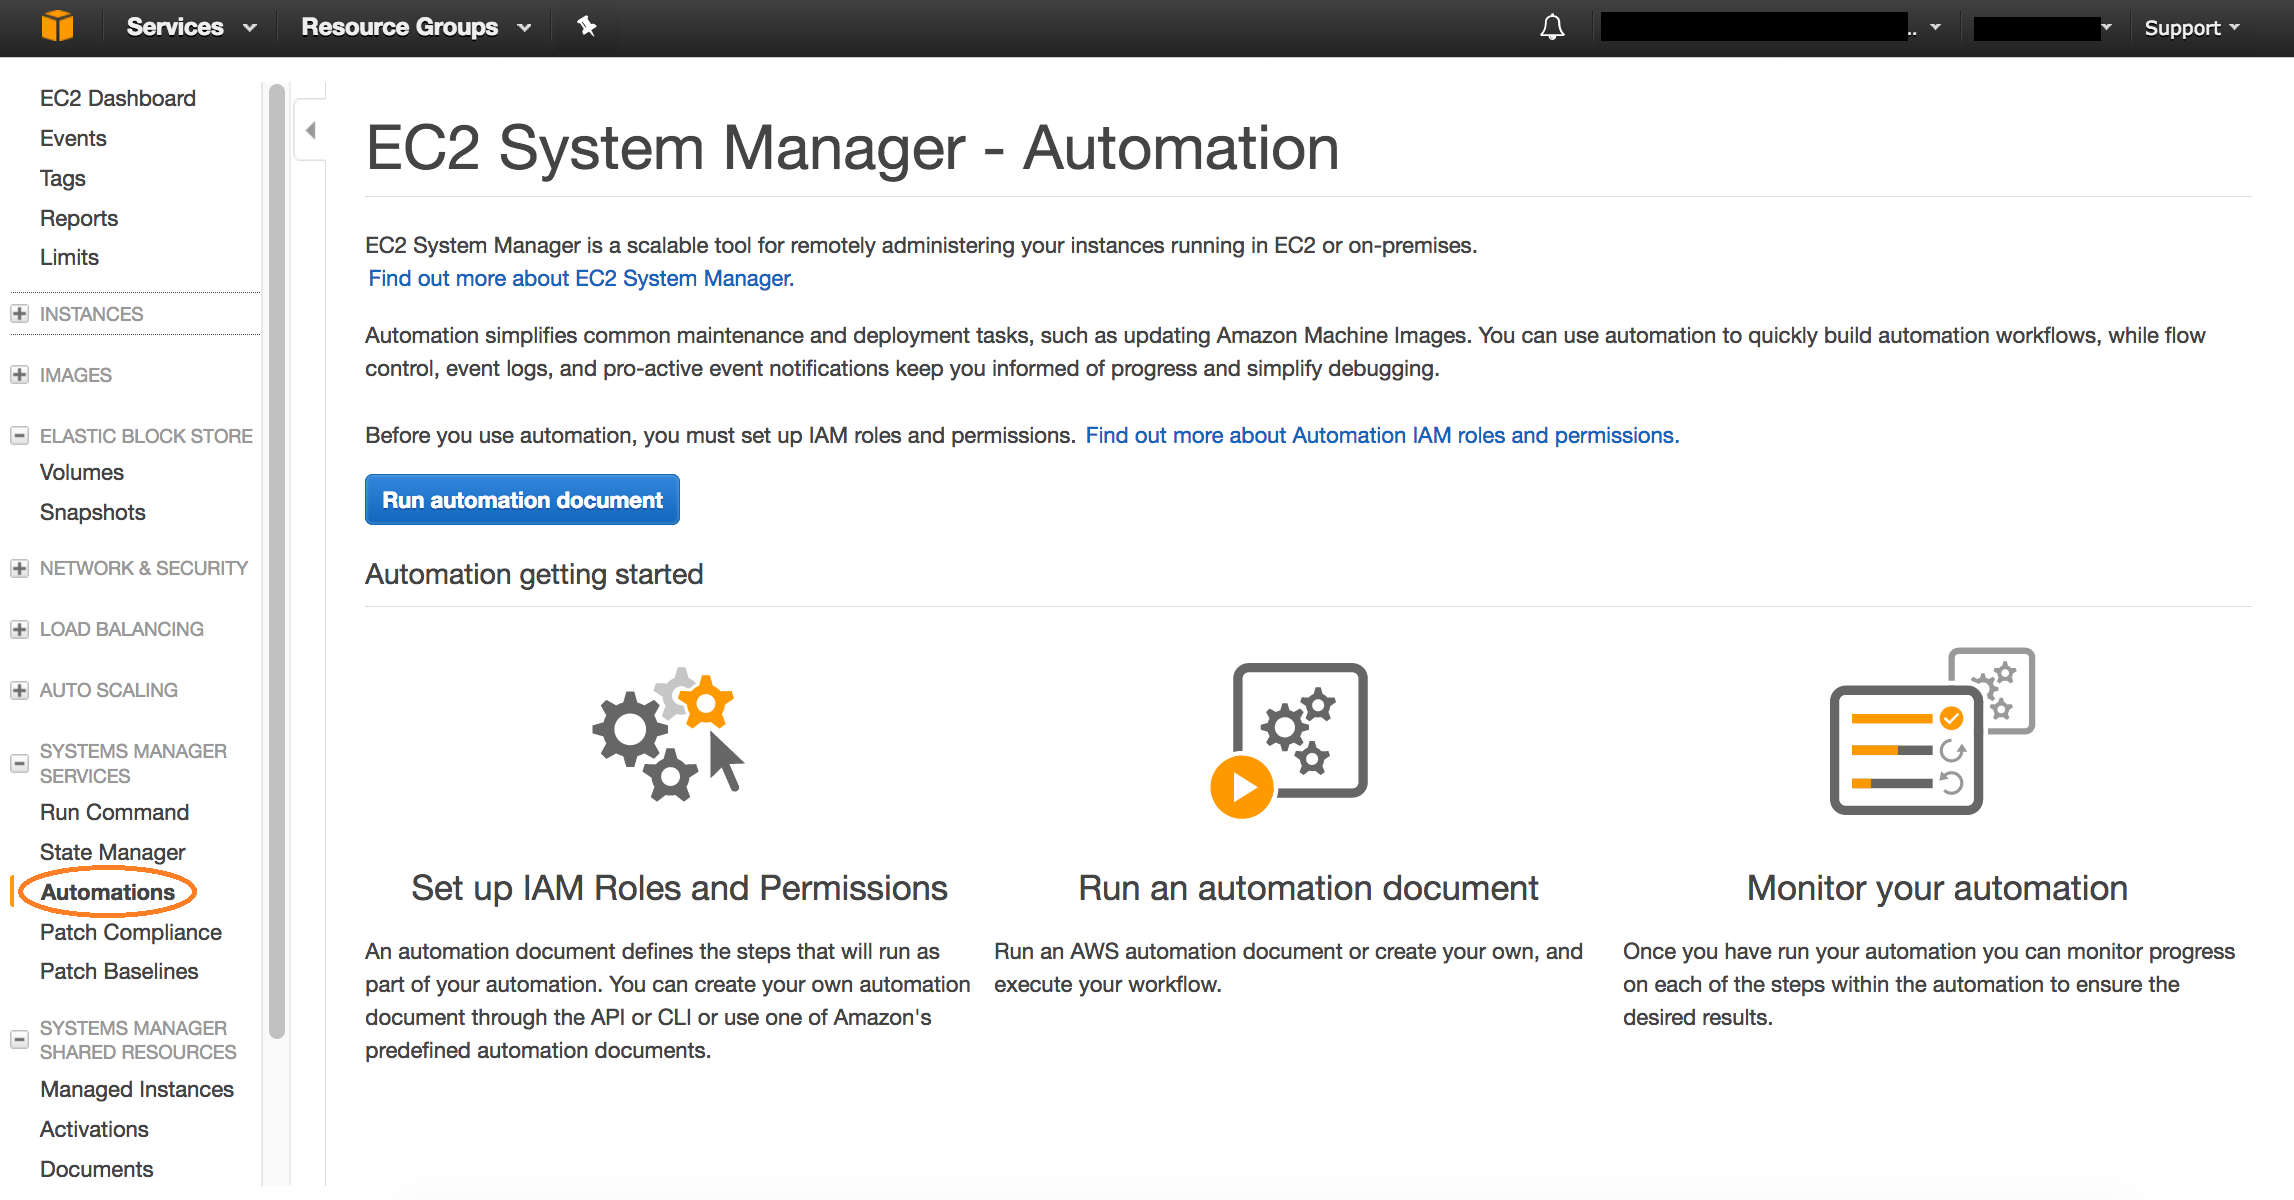 Windows AMI Patching and Maintenance with Amazon EC2 Systems Manager